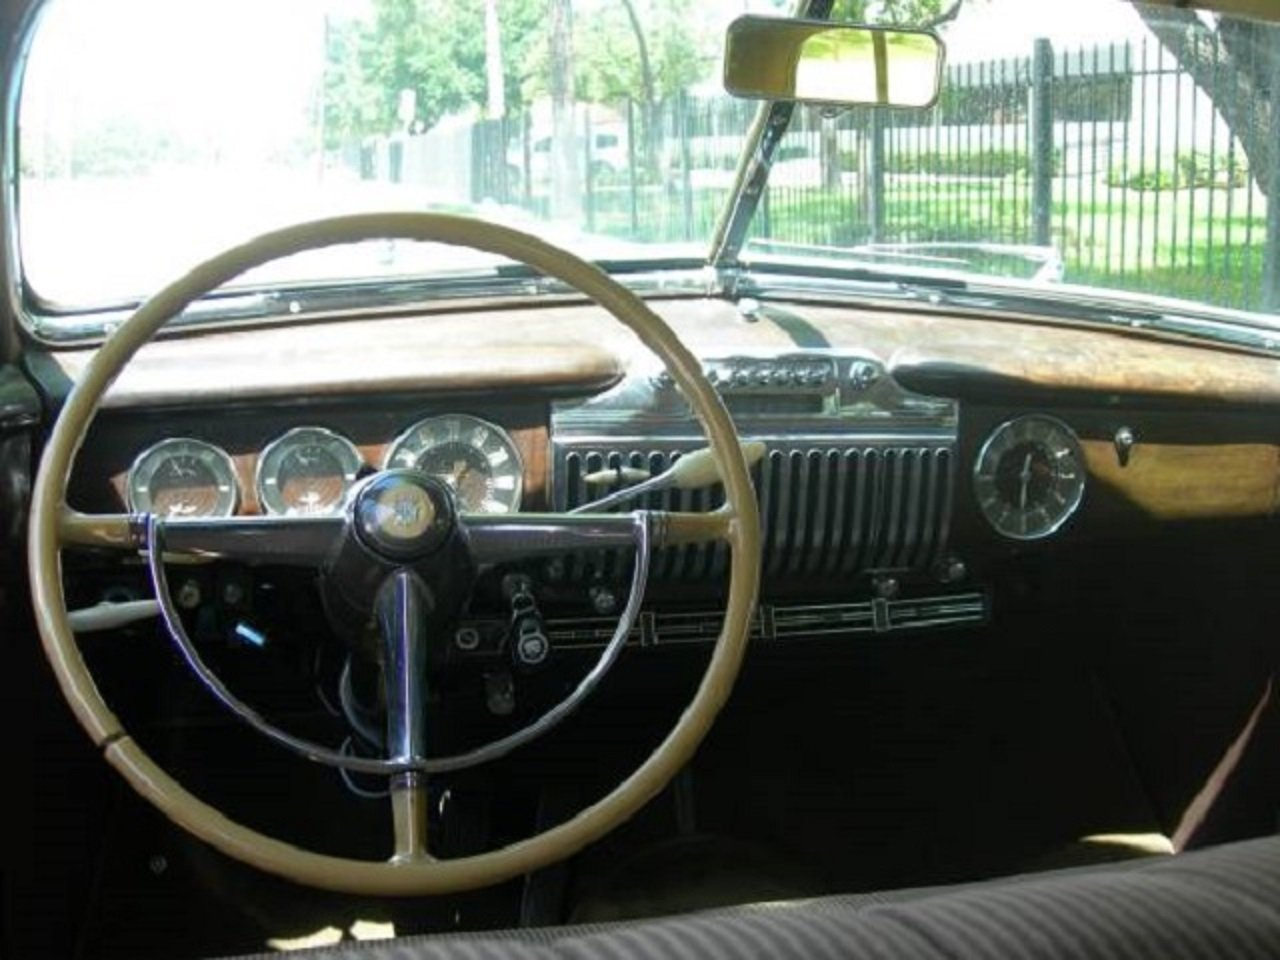 1947 Cadillac 62 4DR Sedan For Sale (picture 4 of 6)